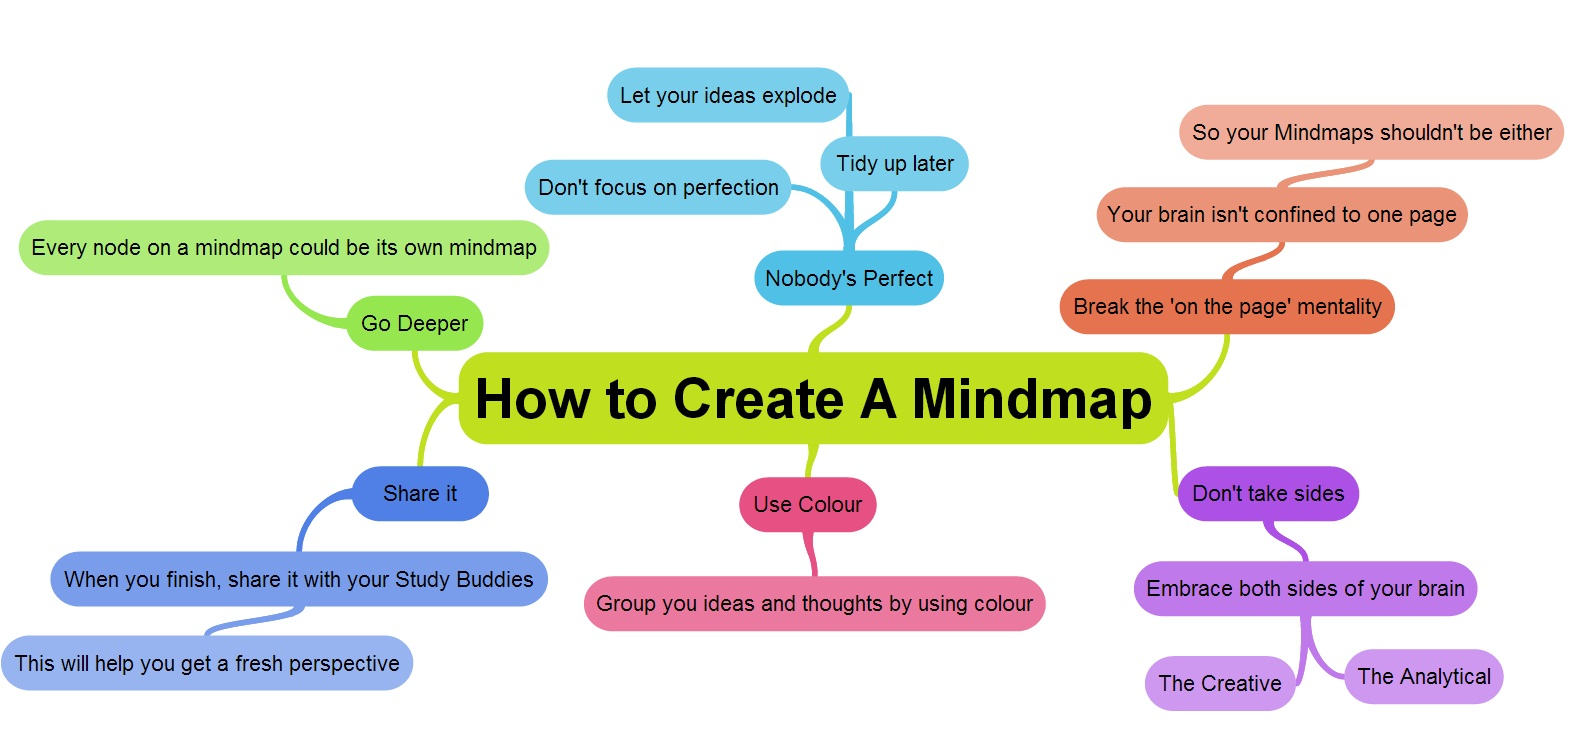 How-to-create-a-mind-map-mindmap.jpg (1582×736)